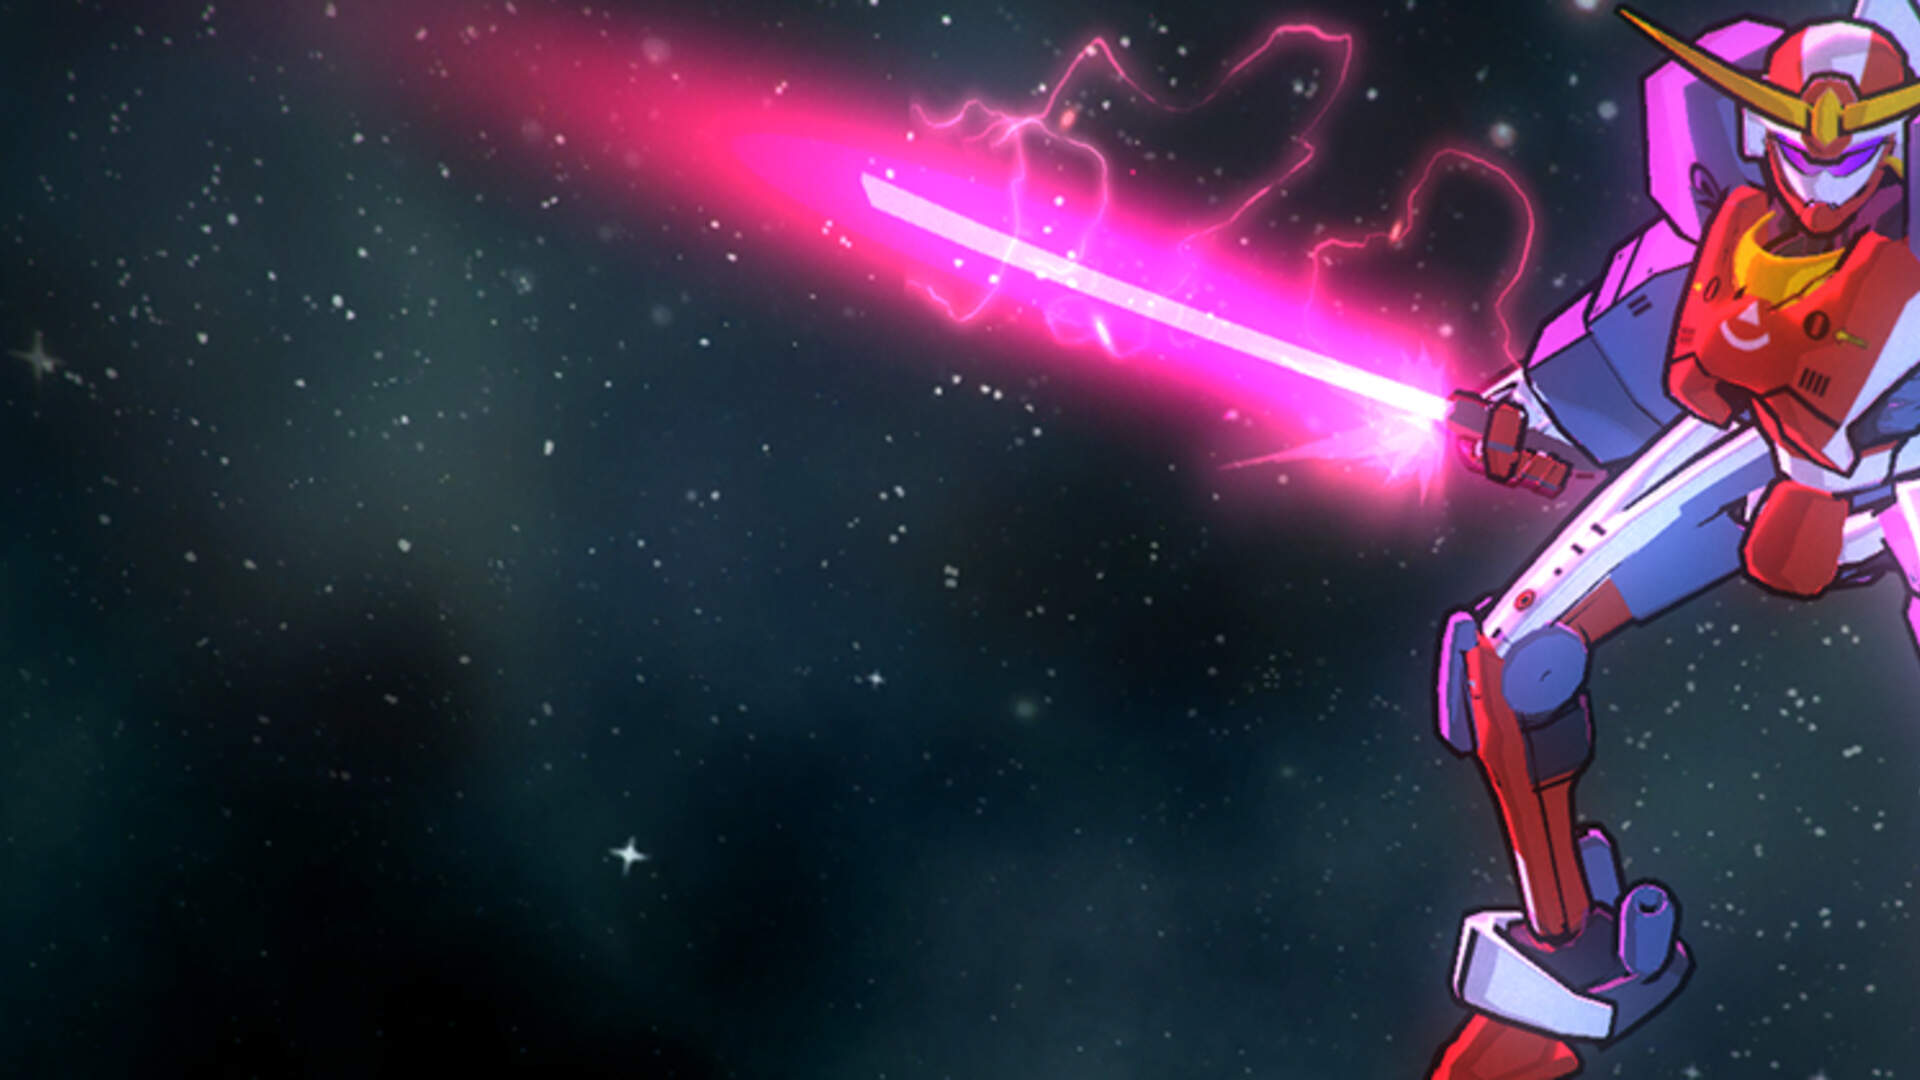 In Case You Missed It: Galak-Z's The Void Makes a Great Shooter Even Better